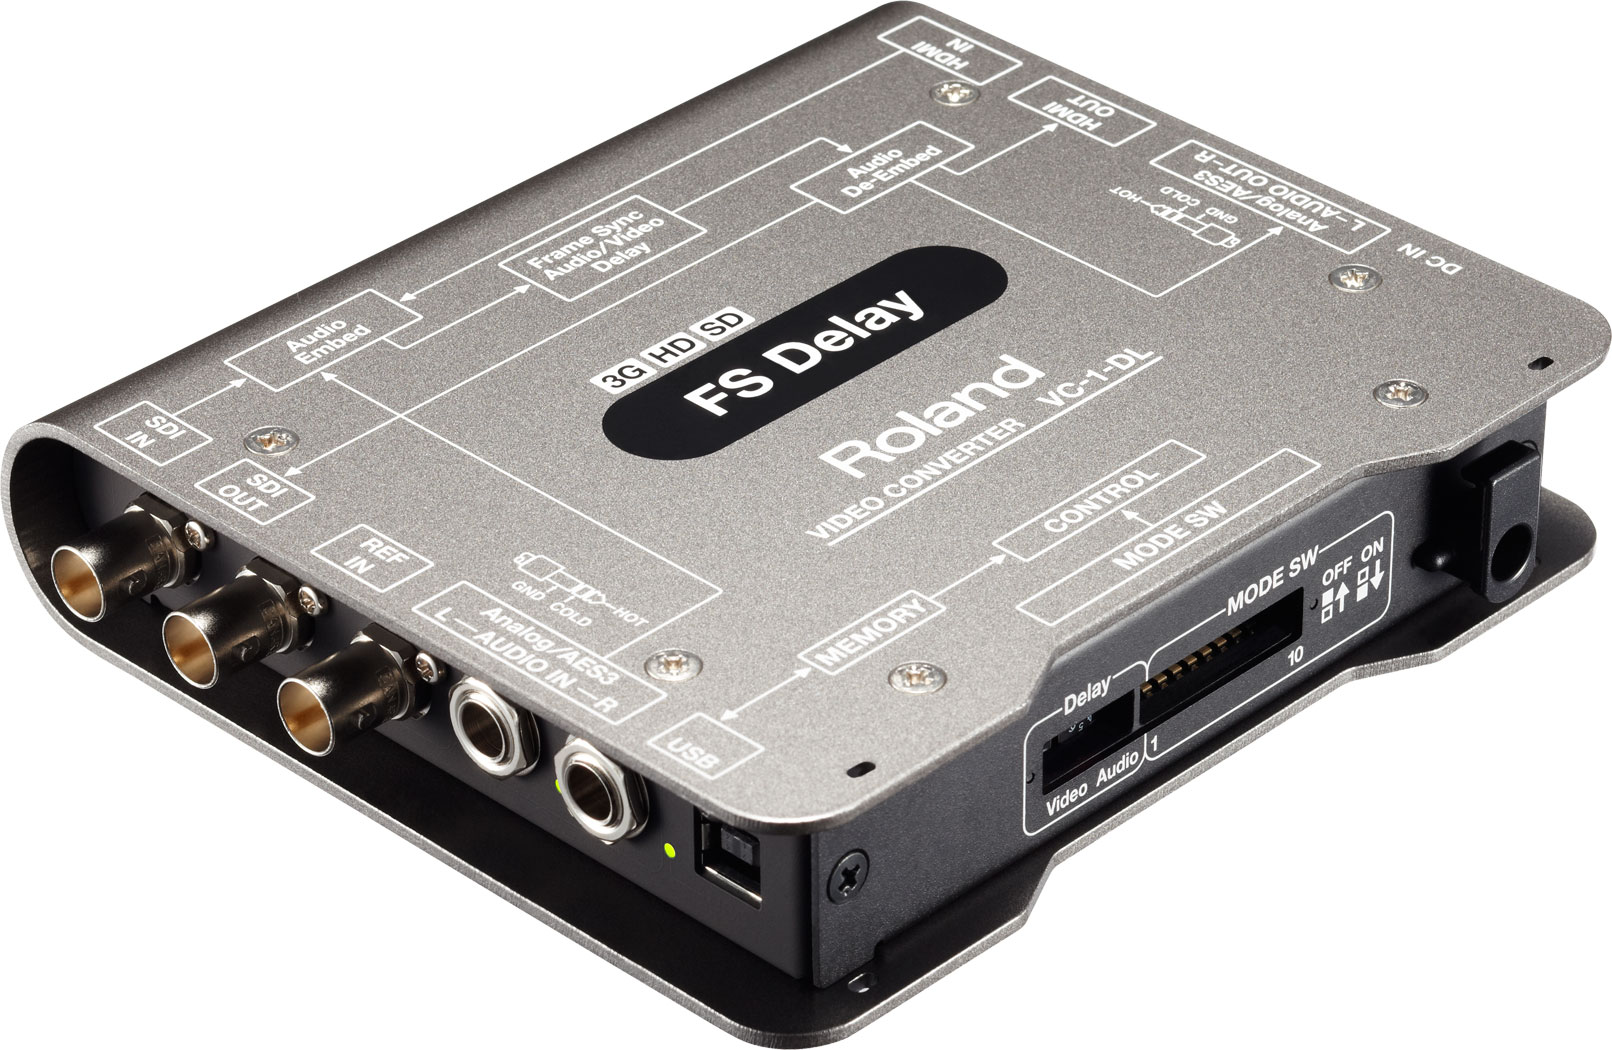 Roland Pro A/V - VC-1-DL | Bi-directional SDI/HDMI with Delay and ...